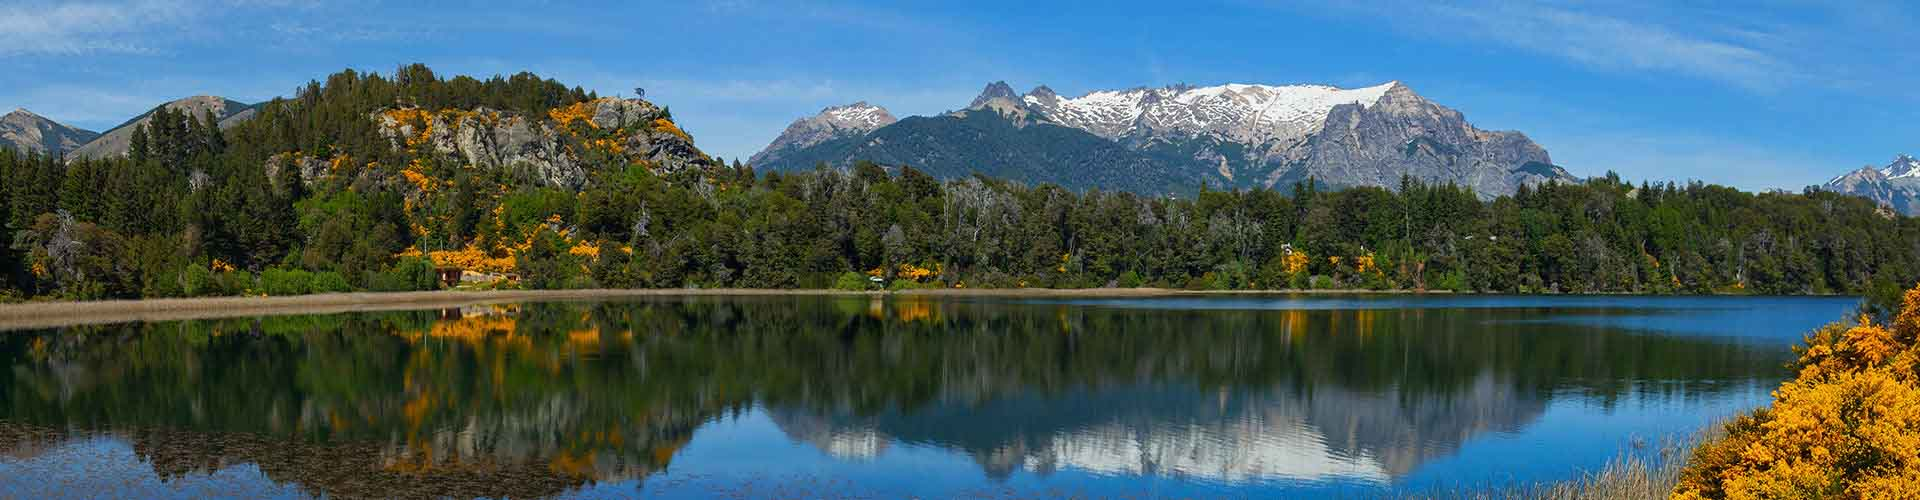 Bariloche – Hotels in Bariloche. Maps of Bariloche, Photos and Reviews for each Hotel in Bariloche.